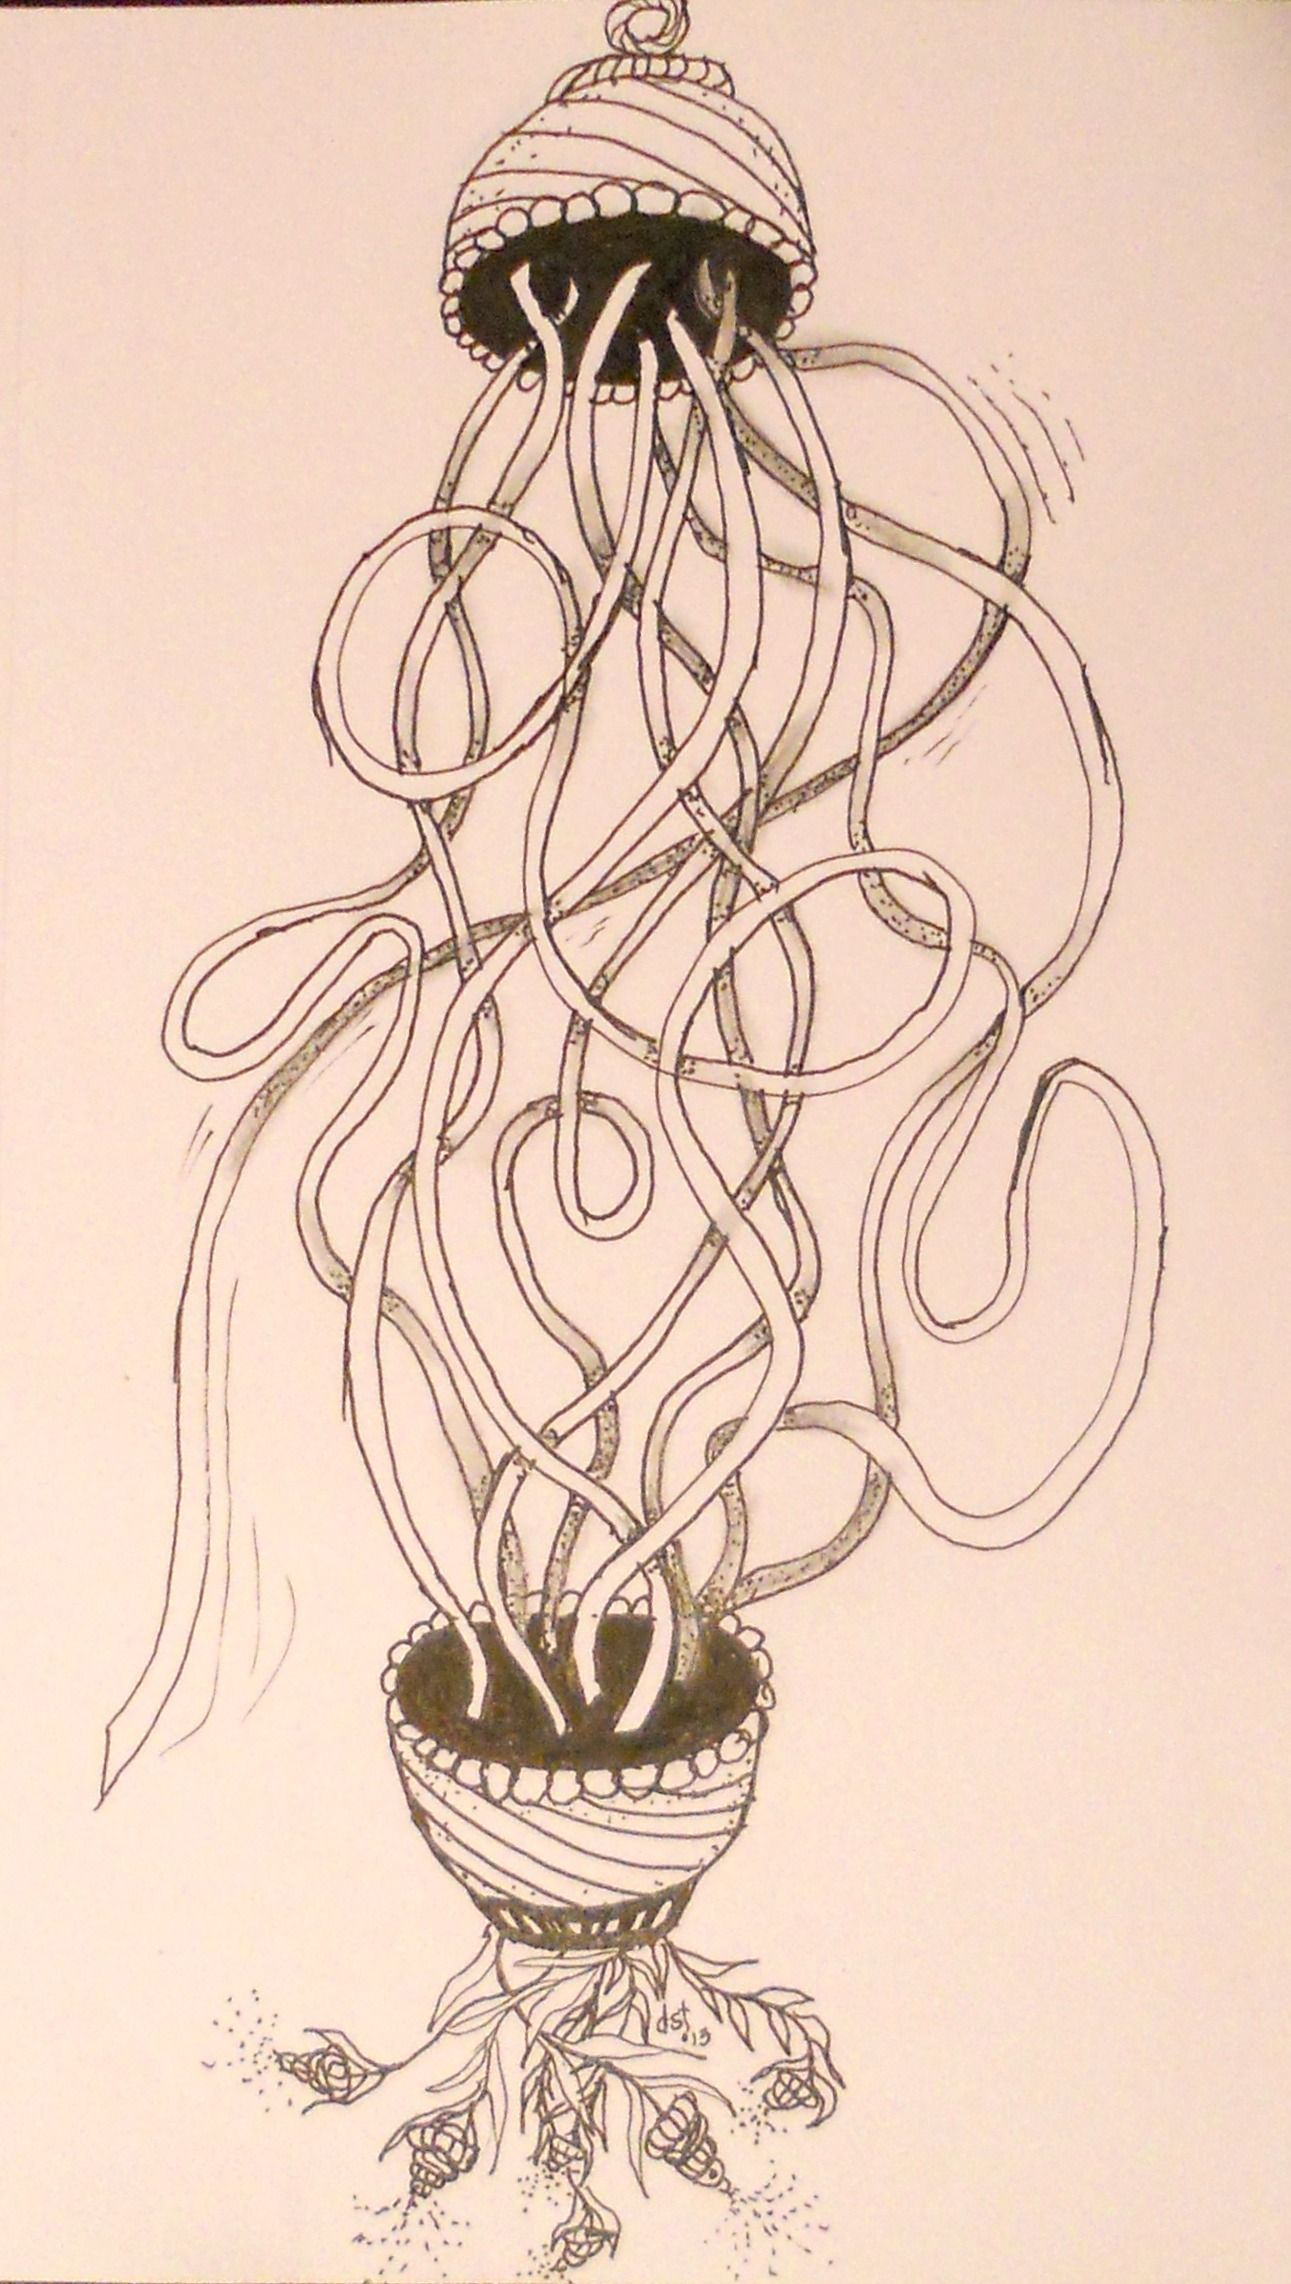 New tangle from Maria & Rick during Certification.  Dusty added zentangle designs in this art form.